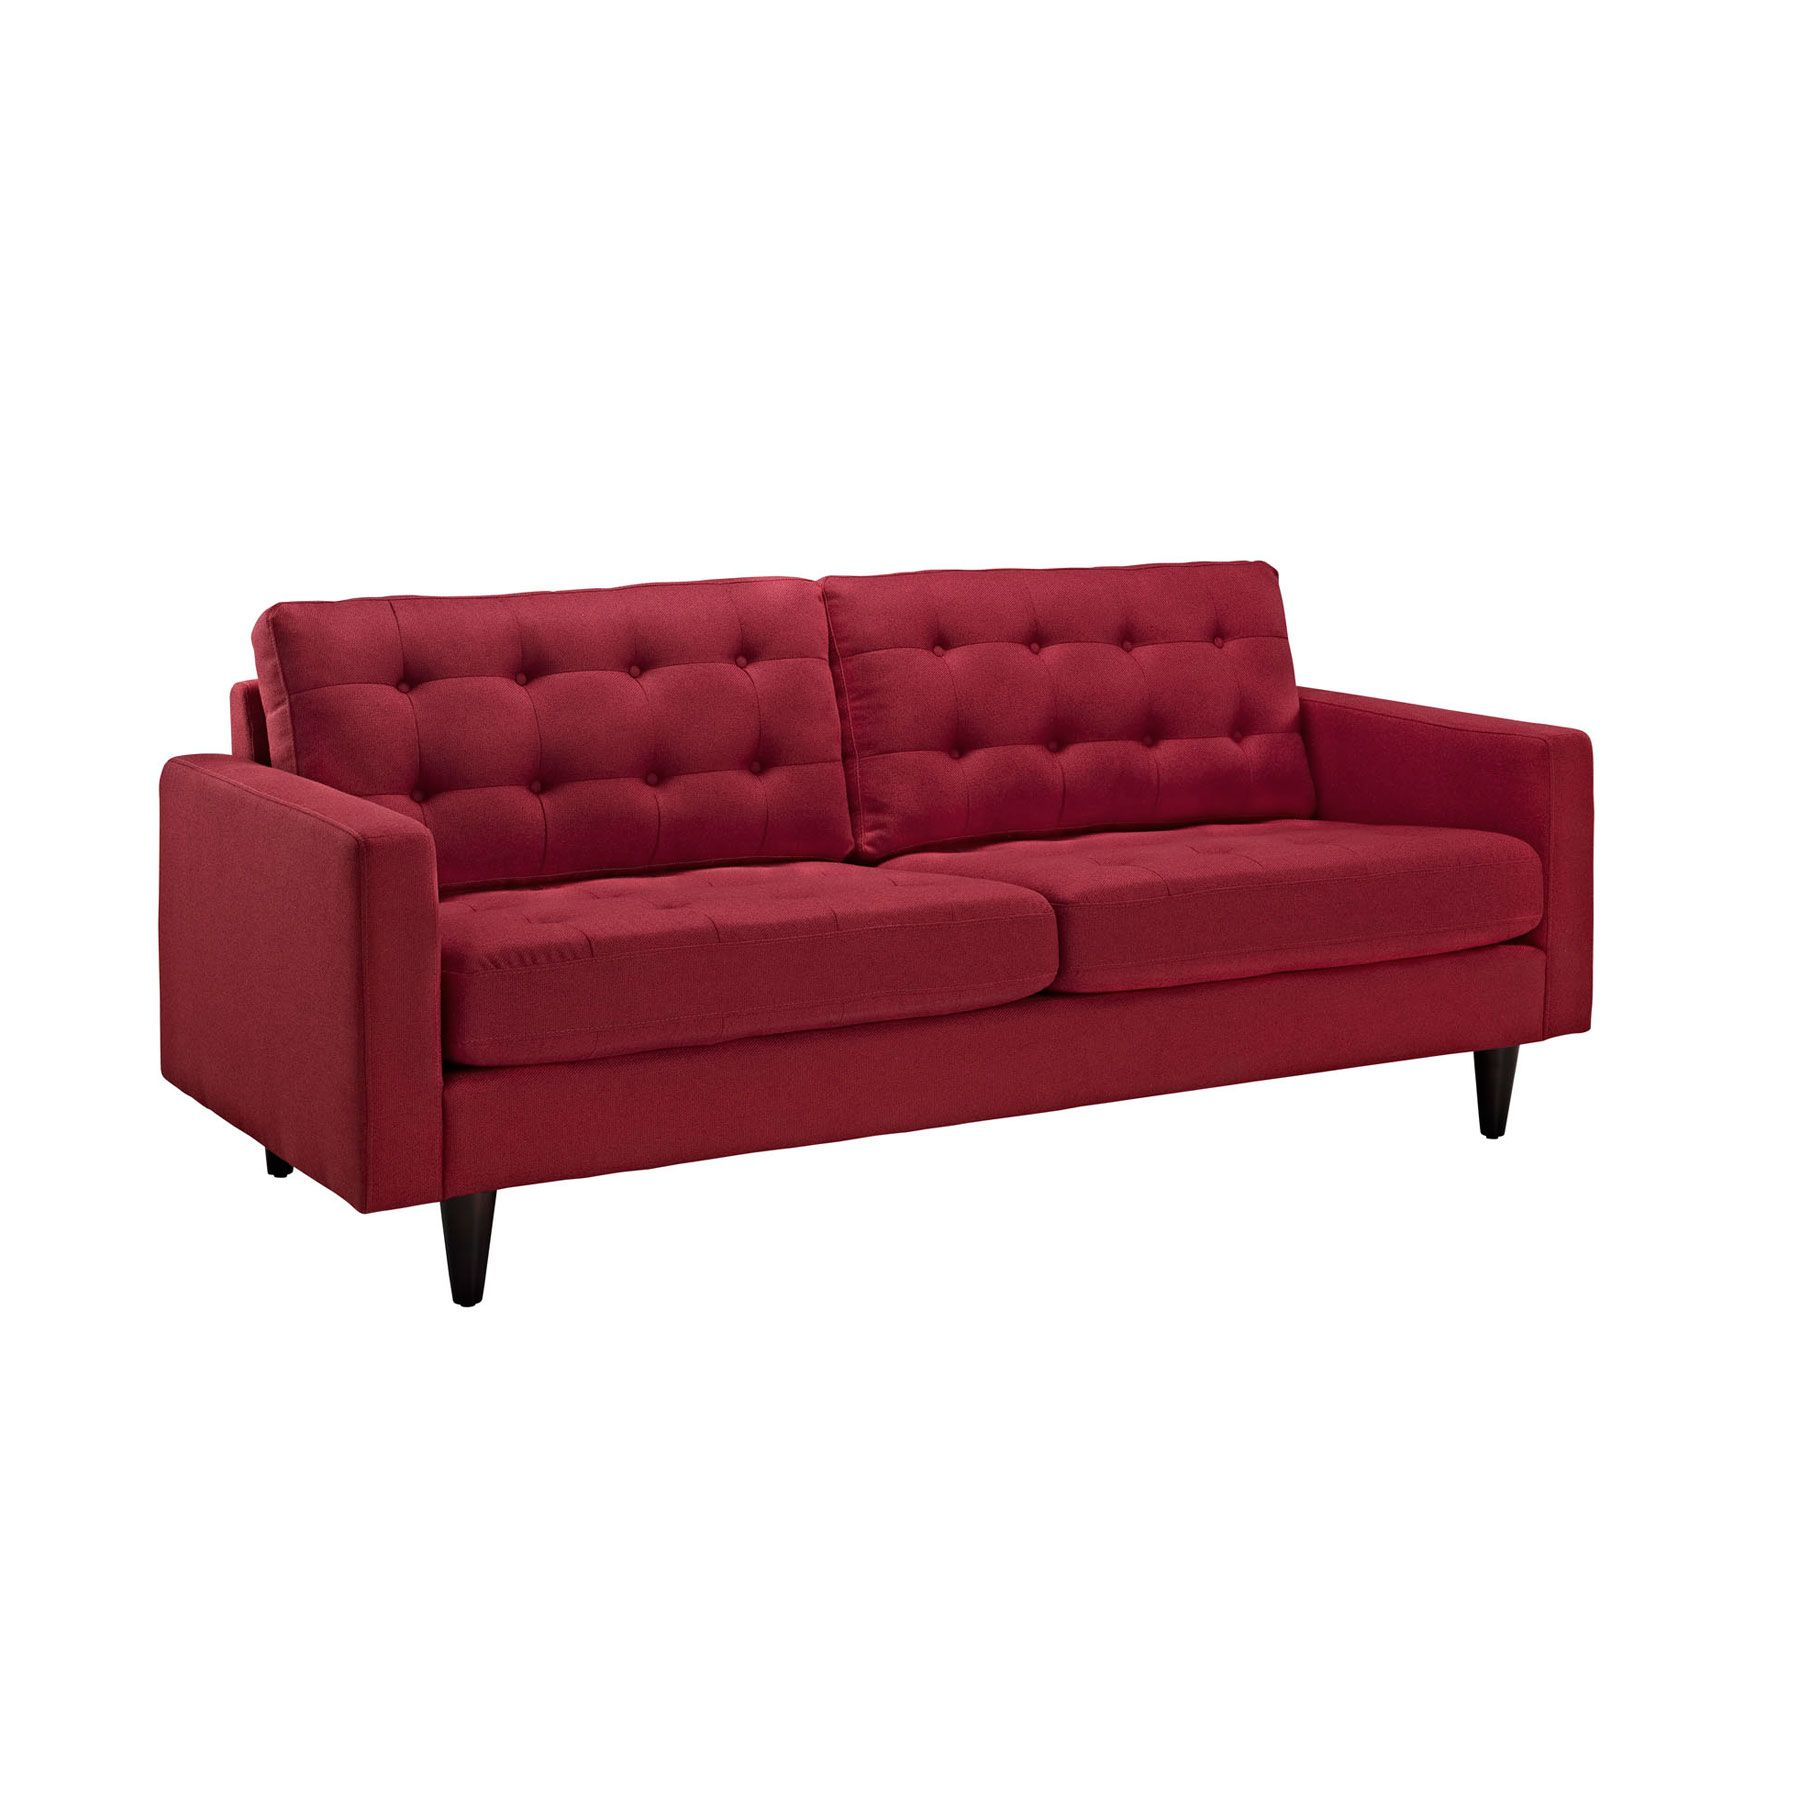 Wrap yourself in contemporary design with the red fabris for Mid century furniture online